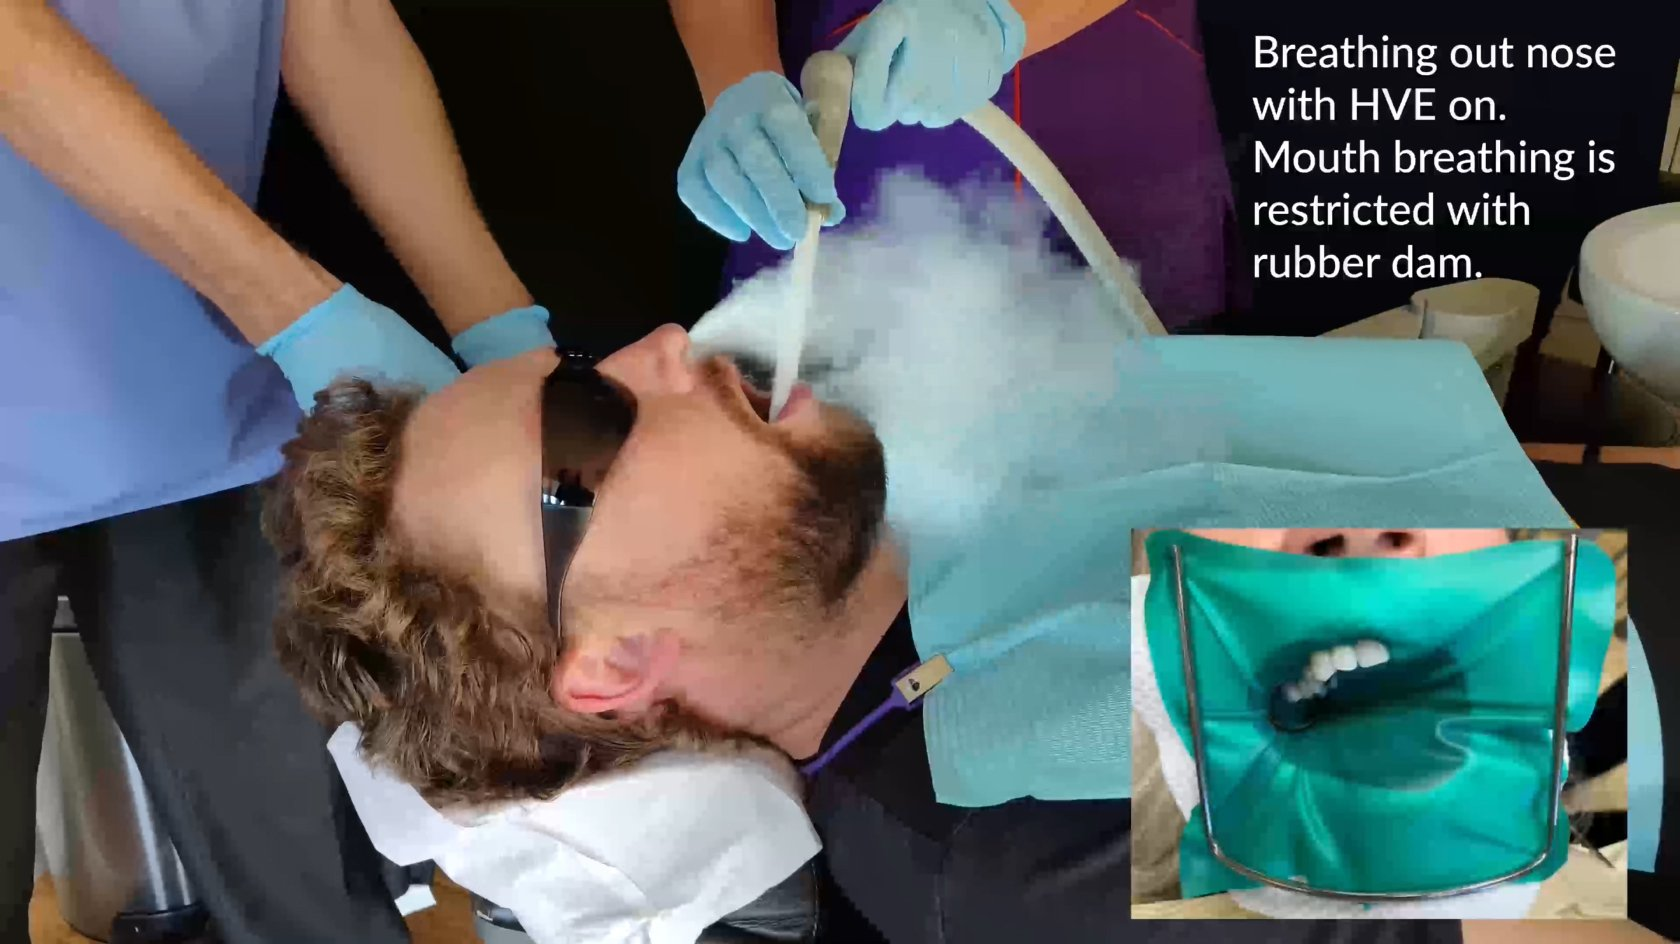 HVE Smoke - Breathing out patients nose.